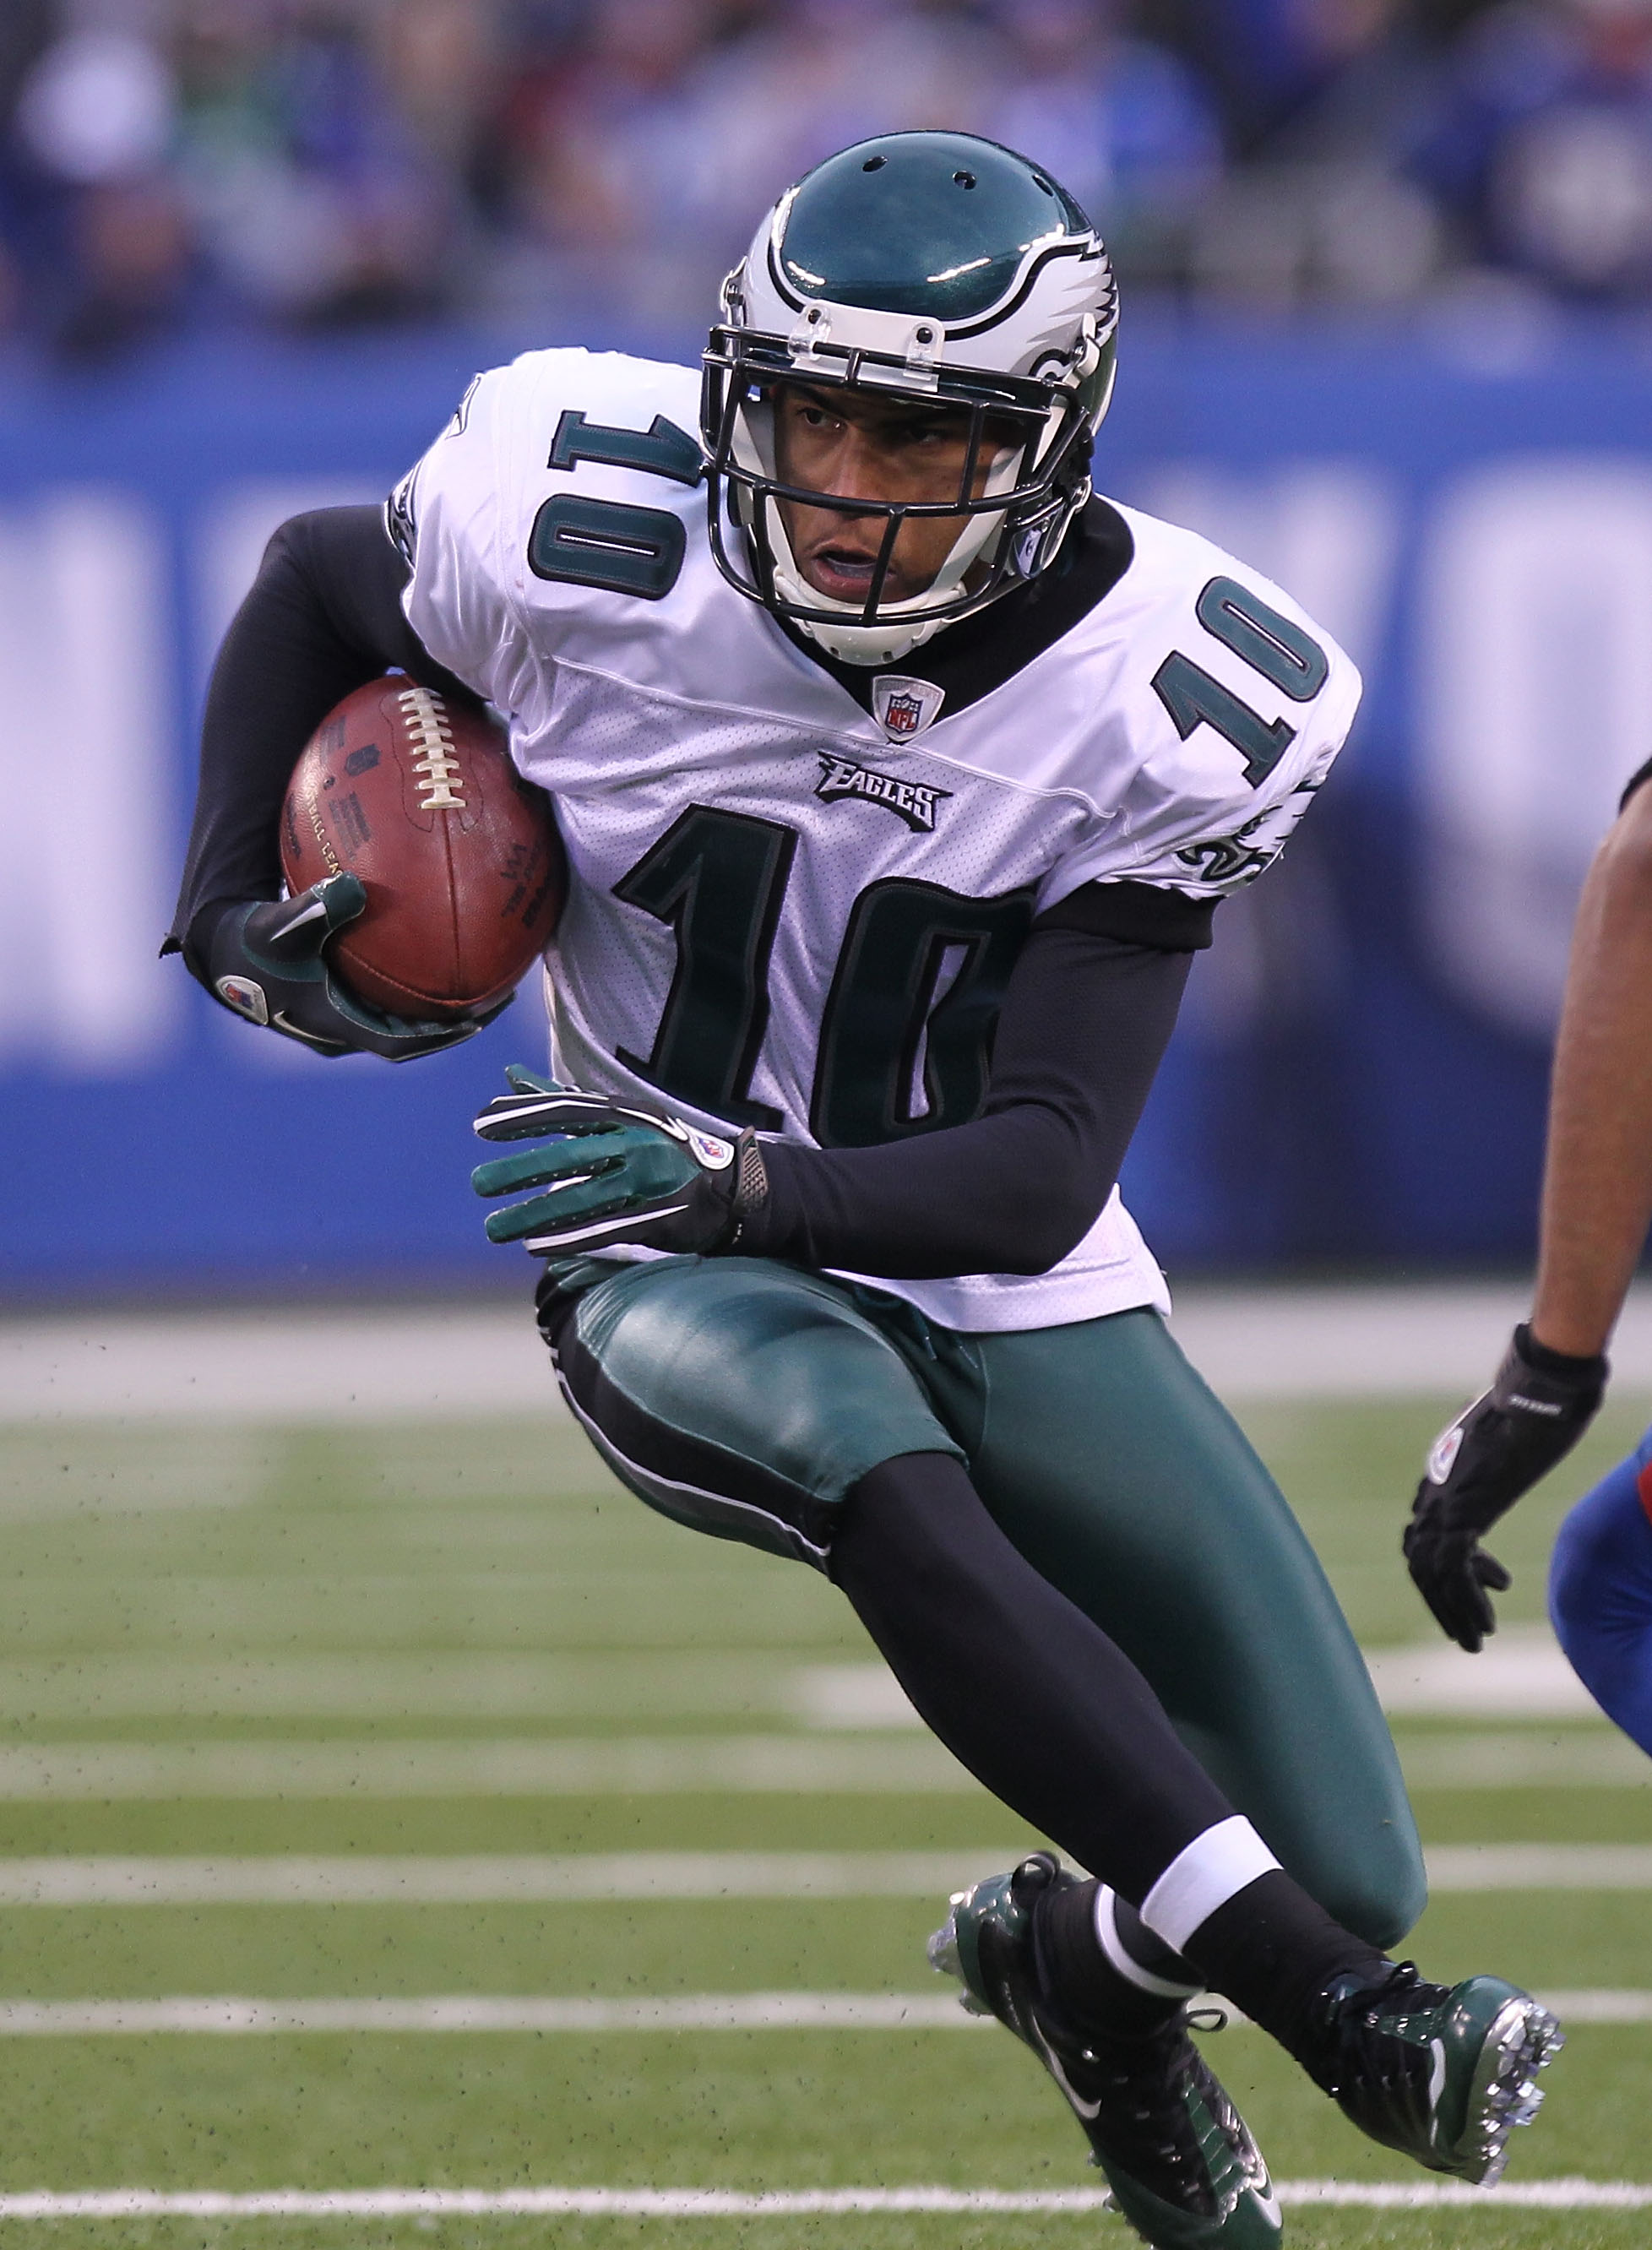 EAST RUTHERFORD, NJ - DECEMBER 19:  DeSean Jackson #10 of the Philadelphia Eagles against  the New York Giants at New Meadowlands Stadium on December 19, 2010 in East Rutherford, New Jersey.  (Photo by Nick Laham/Getty Images)